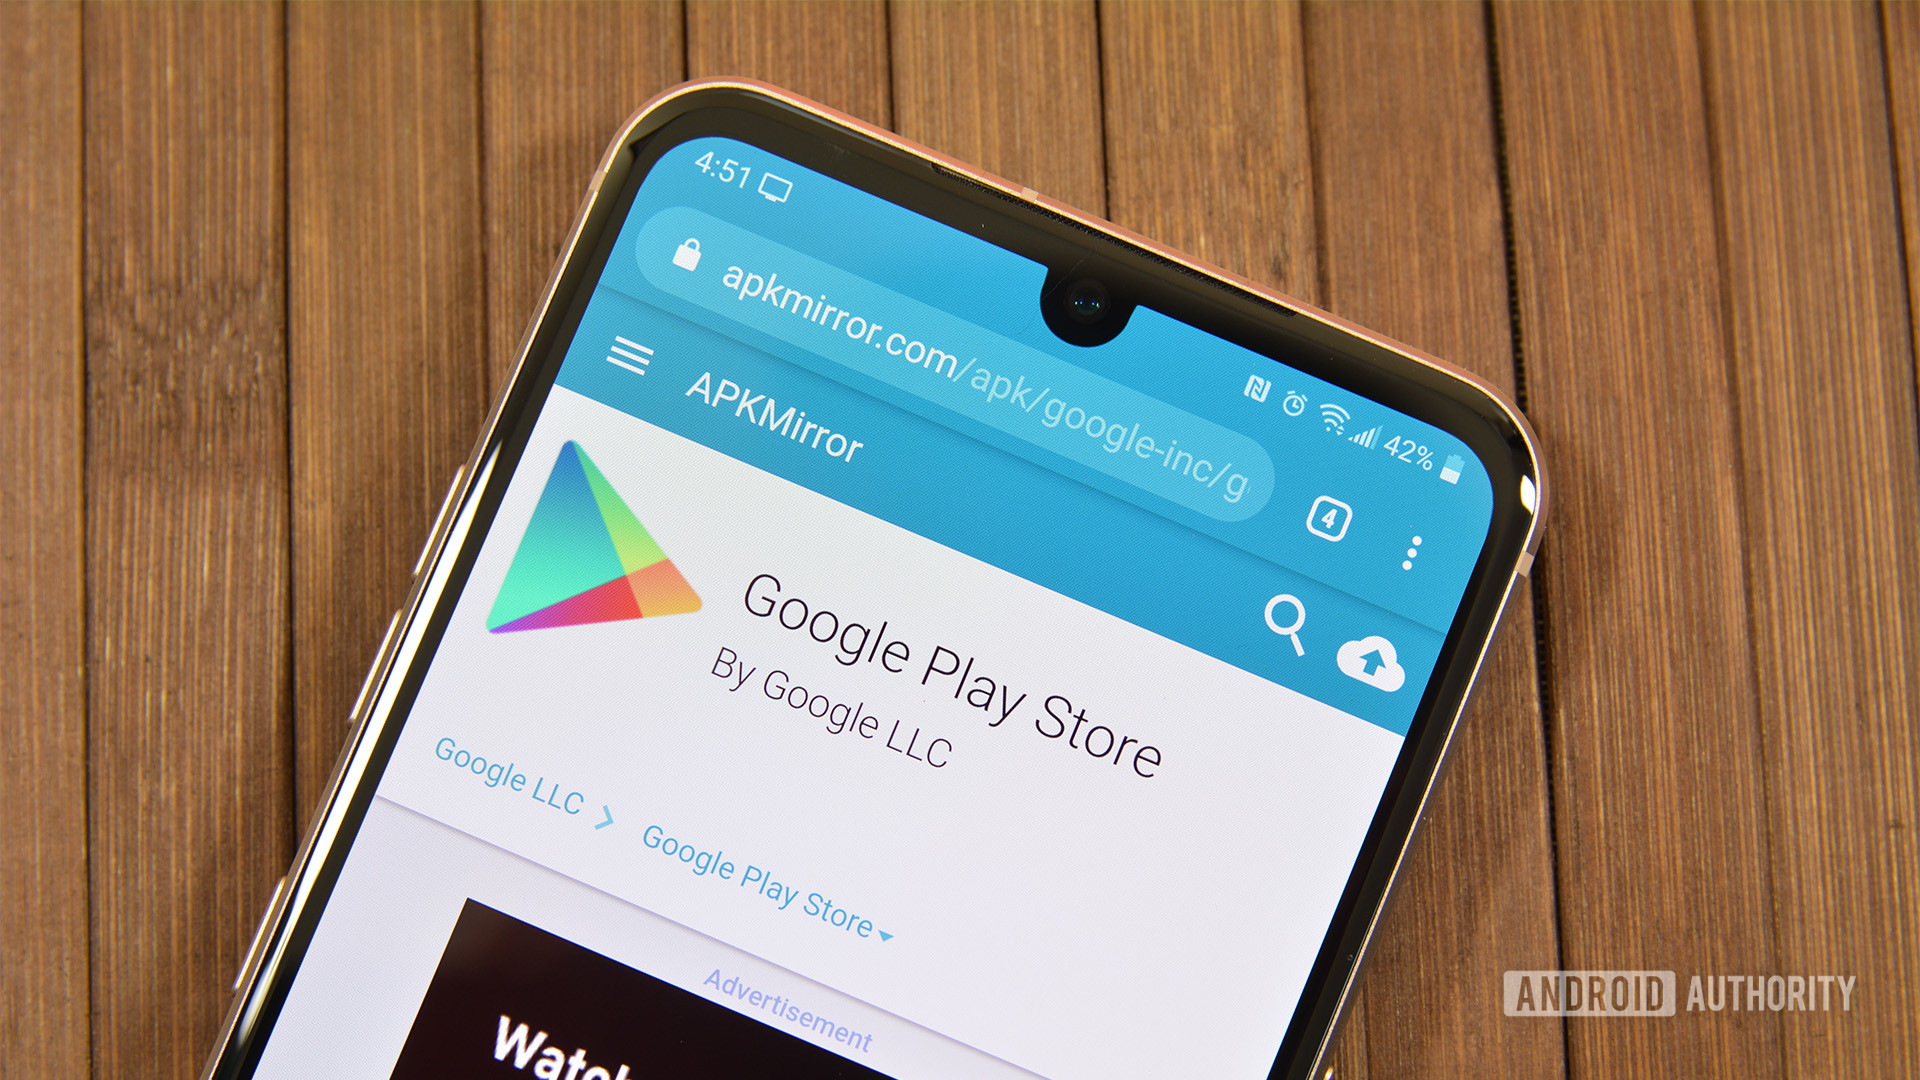 Advertisement platforms categories 4.2.12 user rating4 1/5 apk extraction is a free android app used to extract your apks from your phone and copy them to. How To Install And Download Google Play Store It S Easy